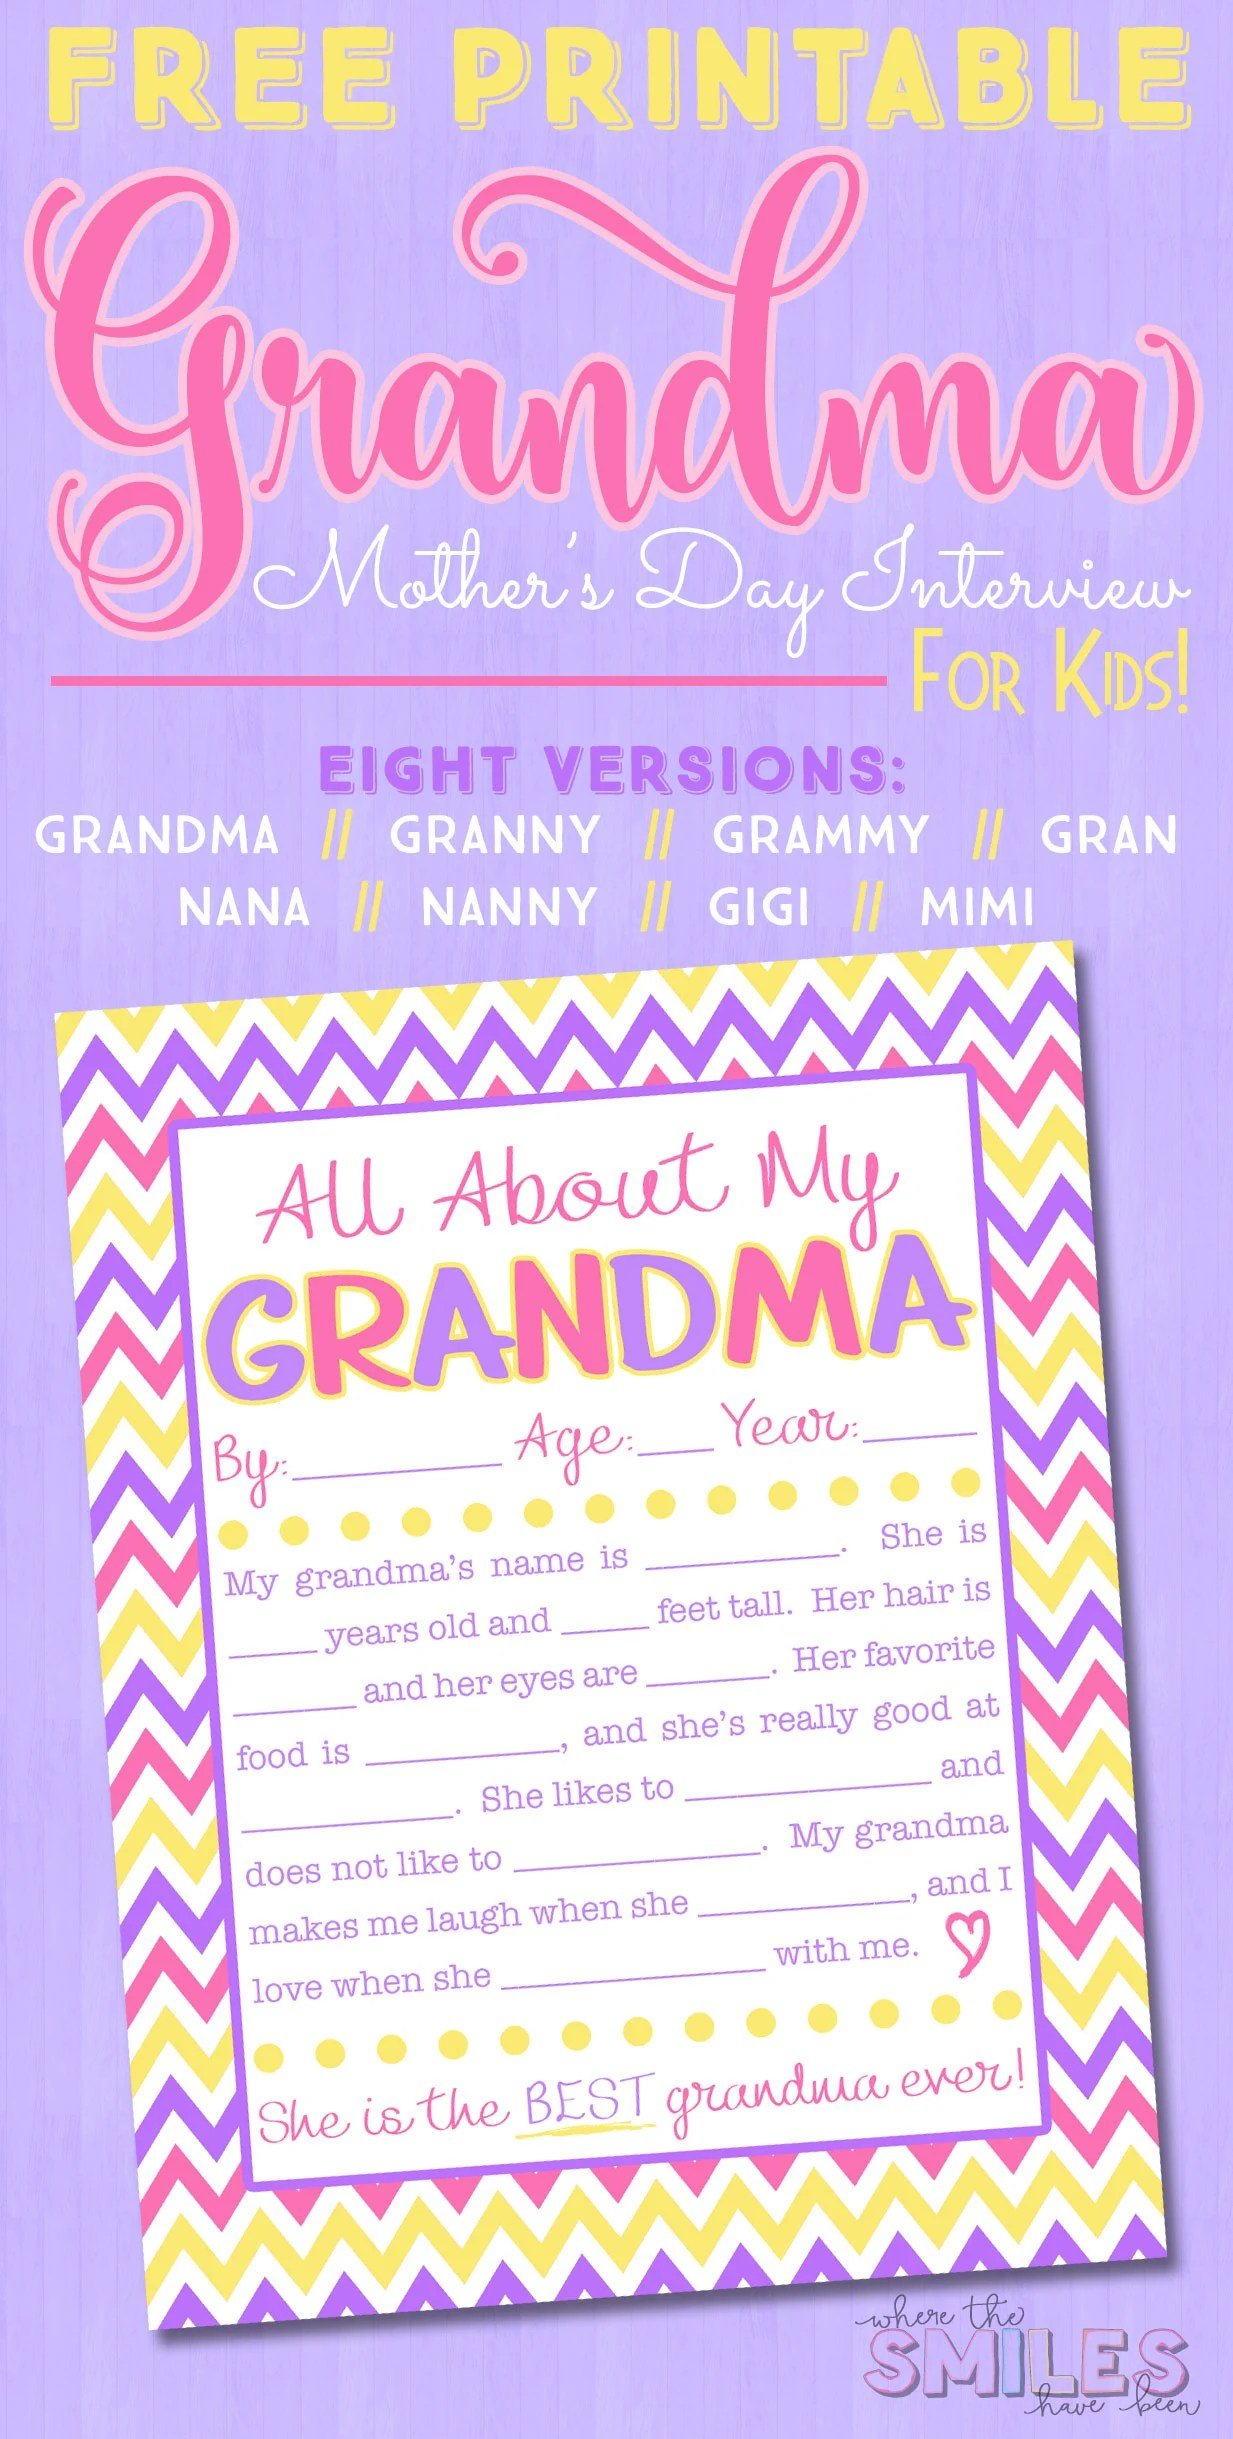 image relating to All About Grandma Printable identified as All Relating to My Grandma Job interview with Free of charge Printable 8